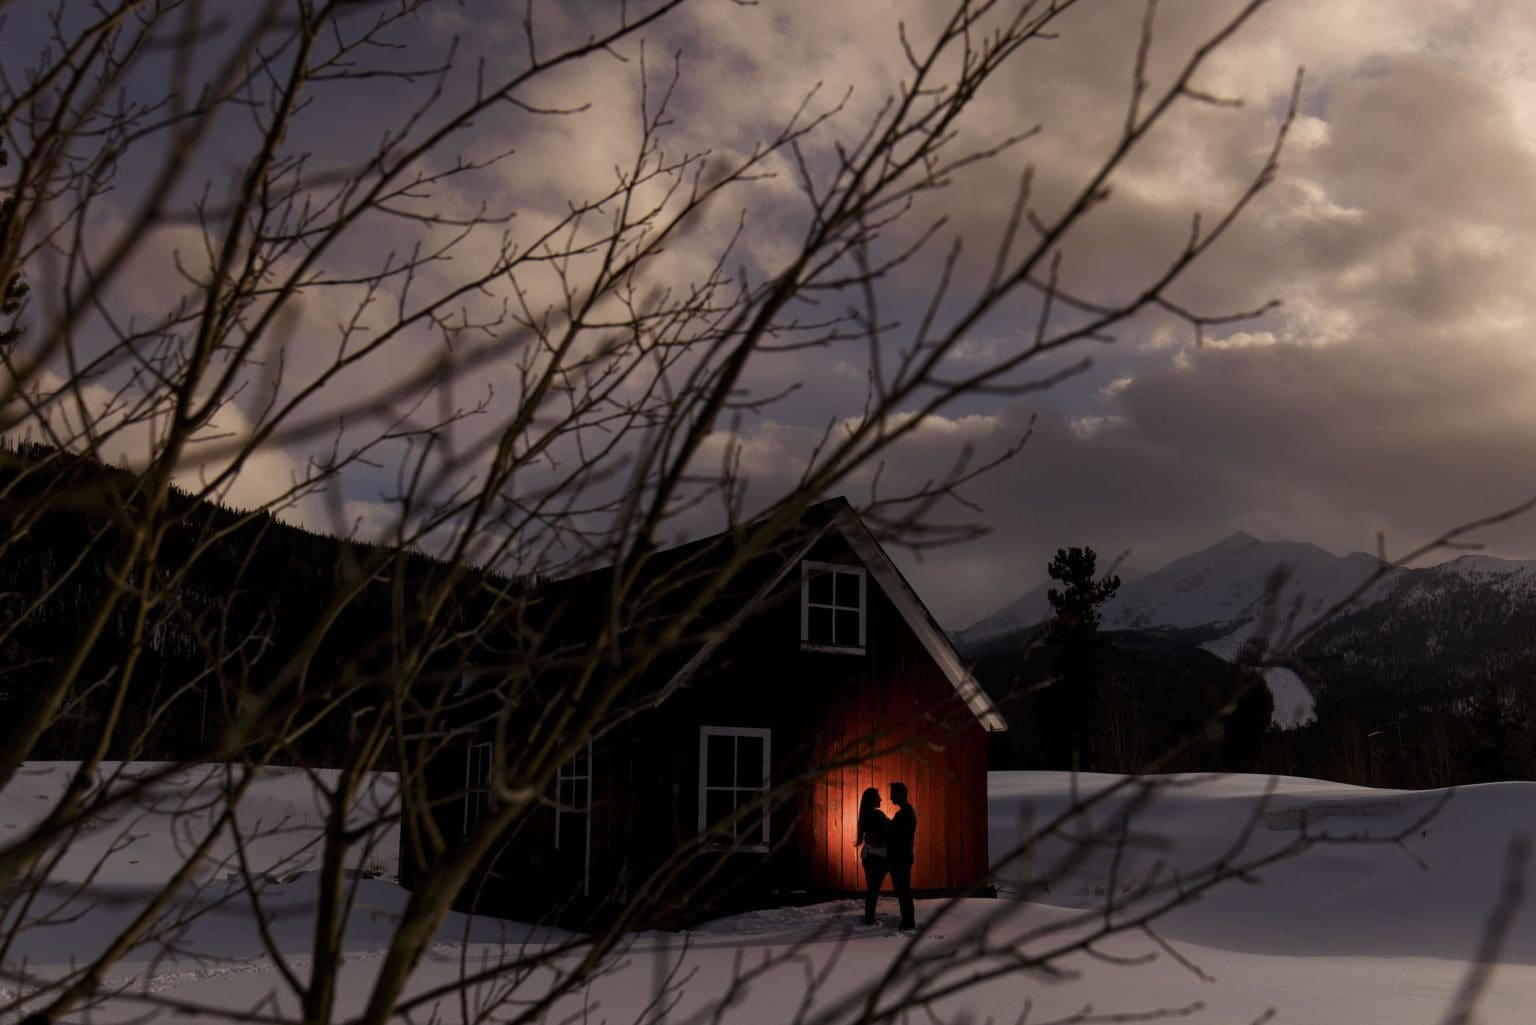 A couple is silhouetted against a red barn in the snow near Frisco, CO